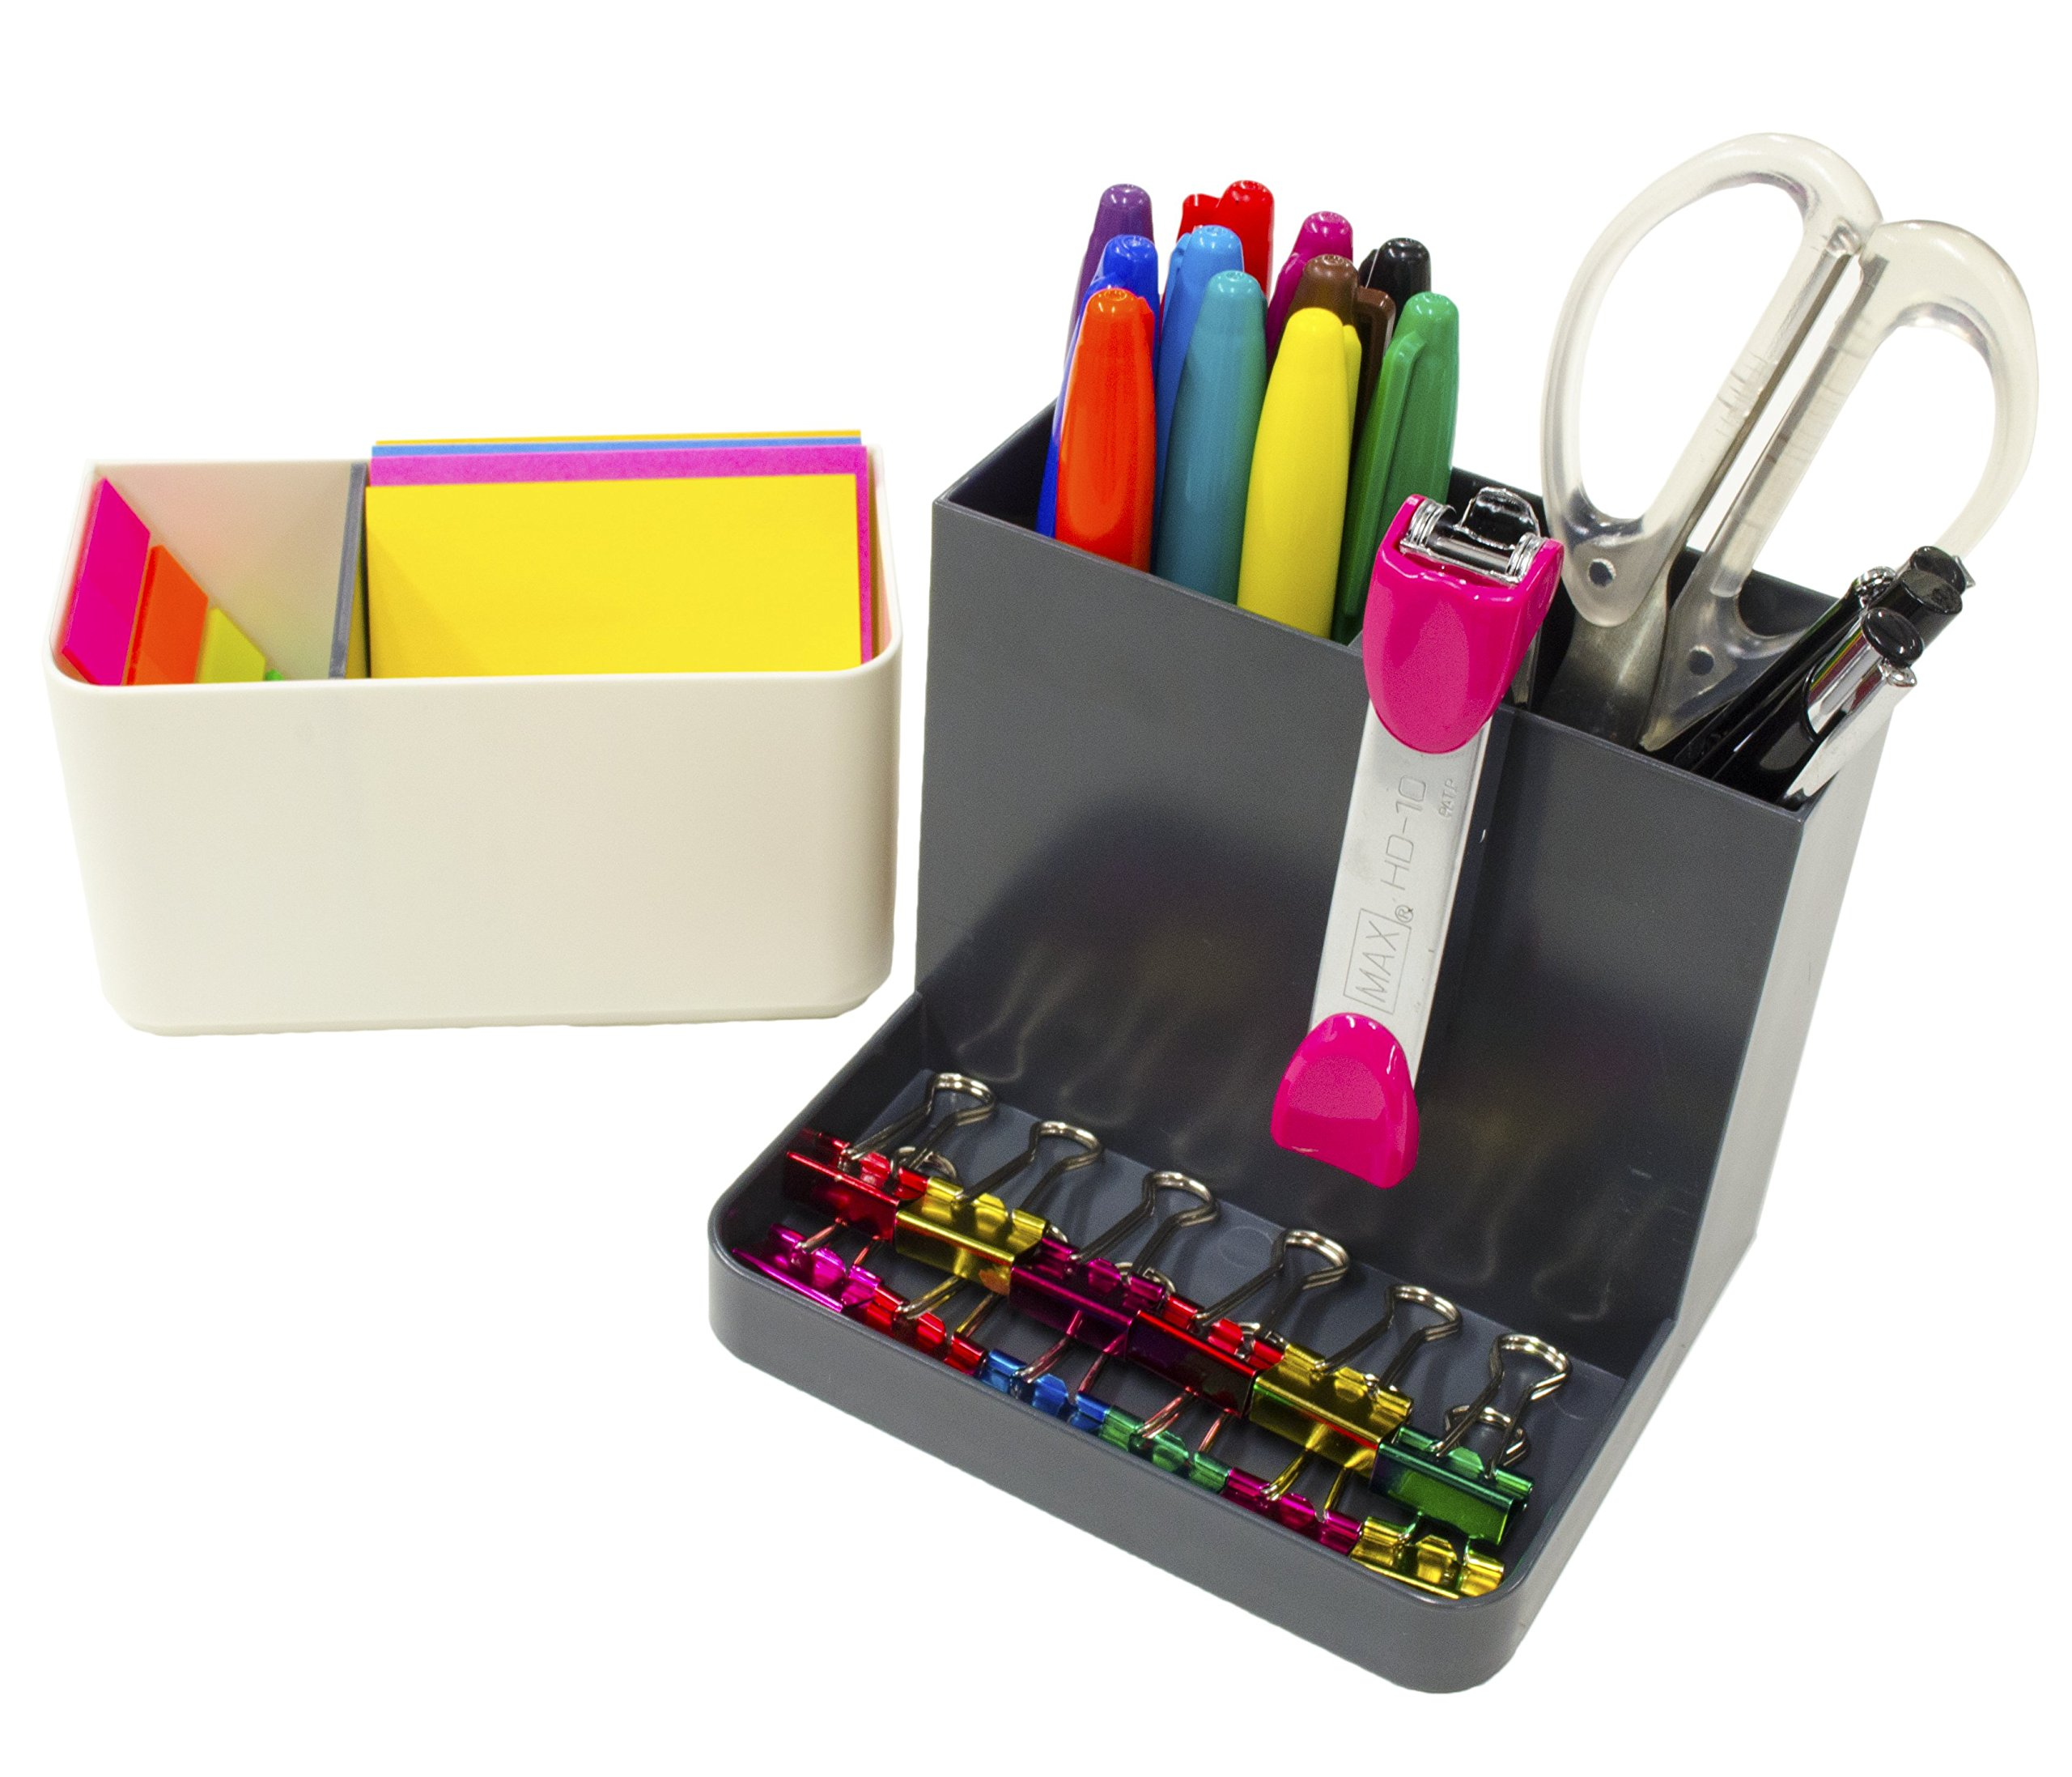 STYLIO Desk Organizer - Desktop Caddy, Pencil Holder for Office/ Home/ Teaching/ School Supplies - Storage for Cubicle Accessories, Pen, Markers, Paper Clips, Crayons, iPhone - Classroom Organization